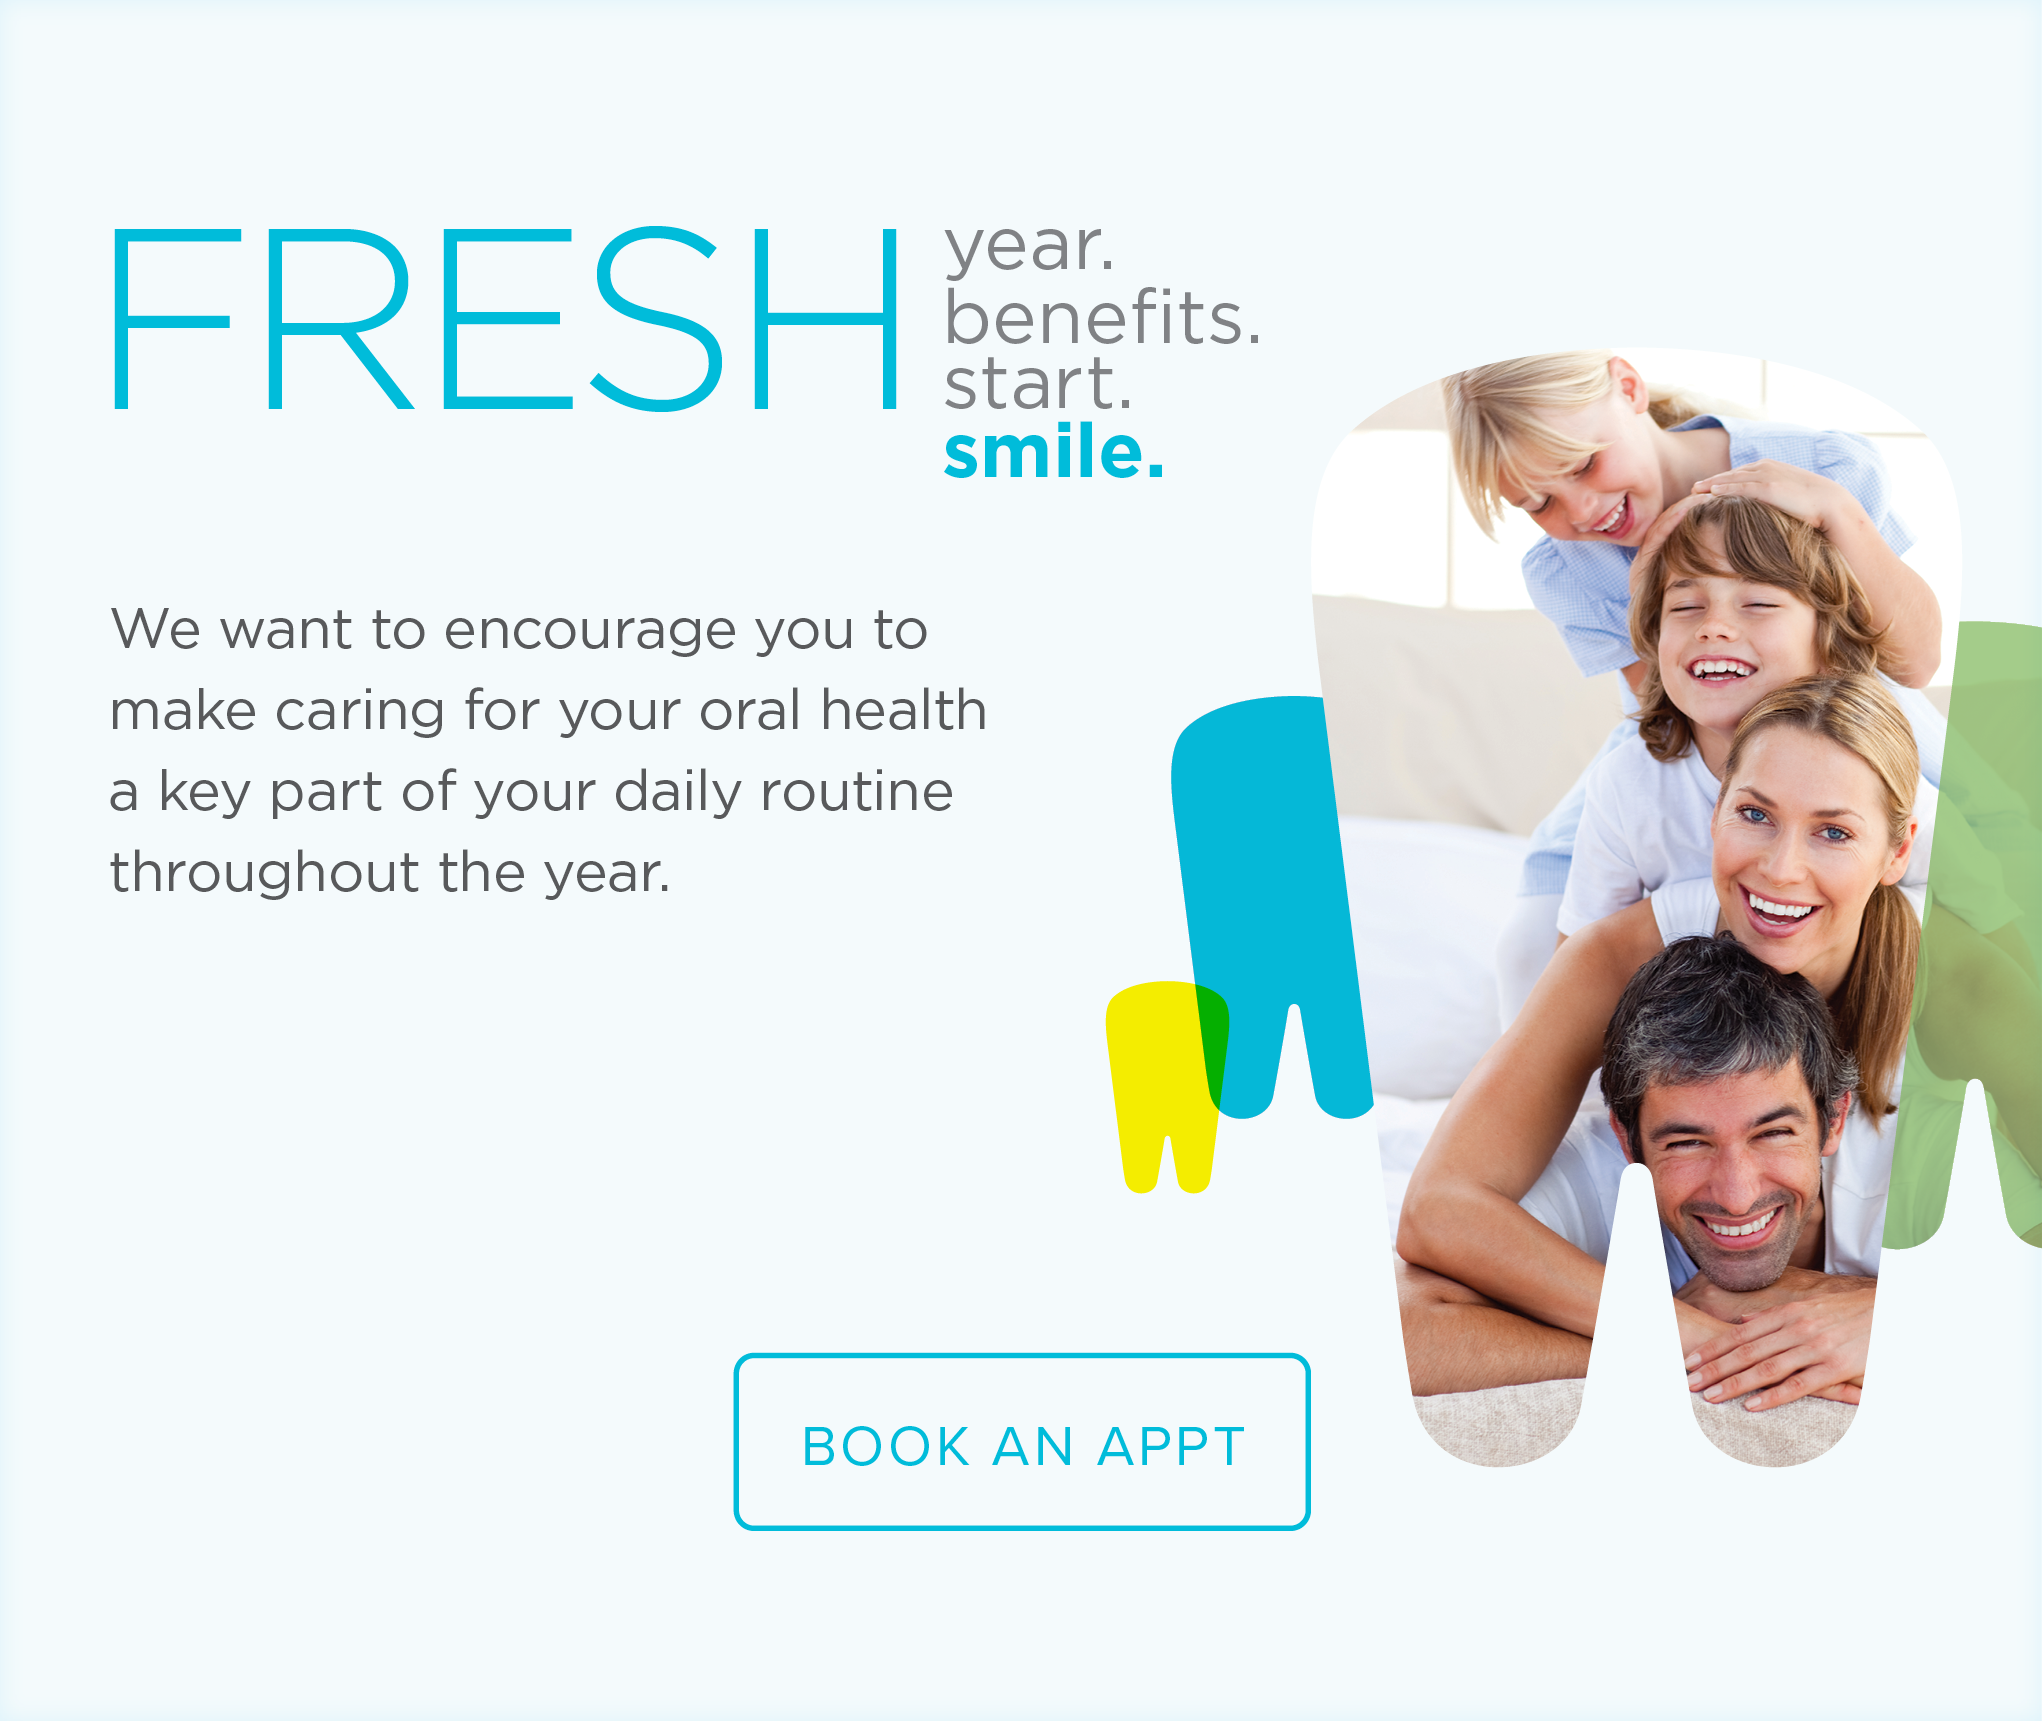 Tempe Modern Dentistry and Orthodontics - Make the Most of Your Benefits